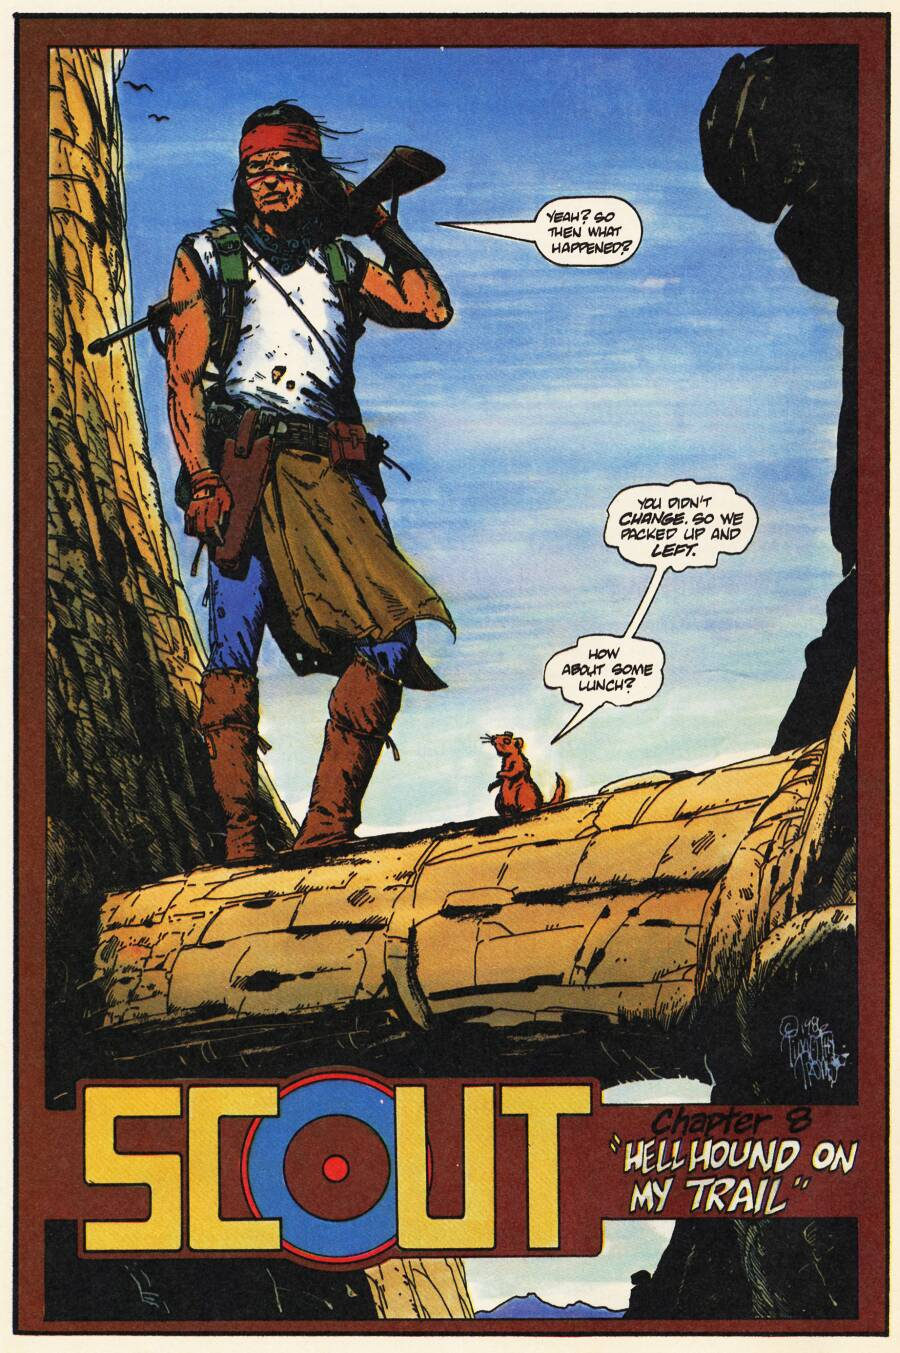 Read online Scout comic -  Issue #8 - 4